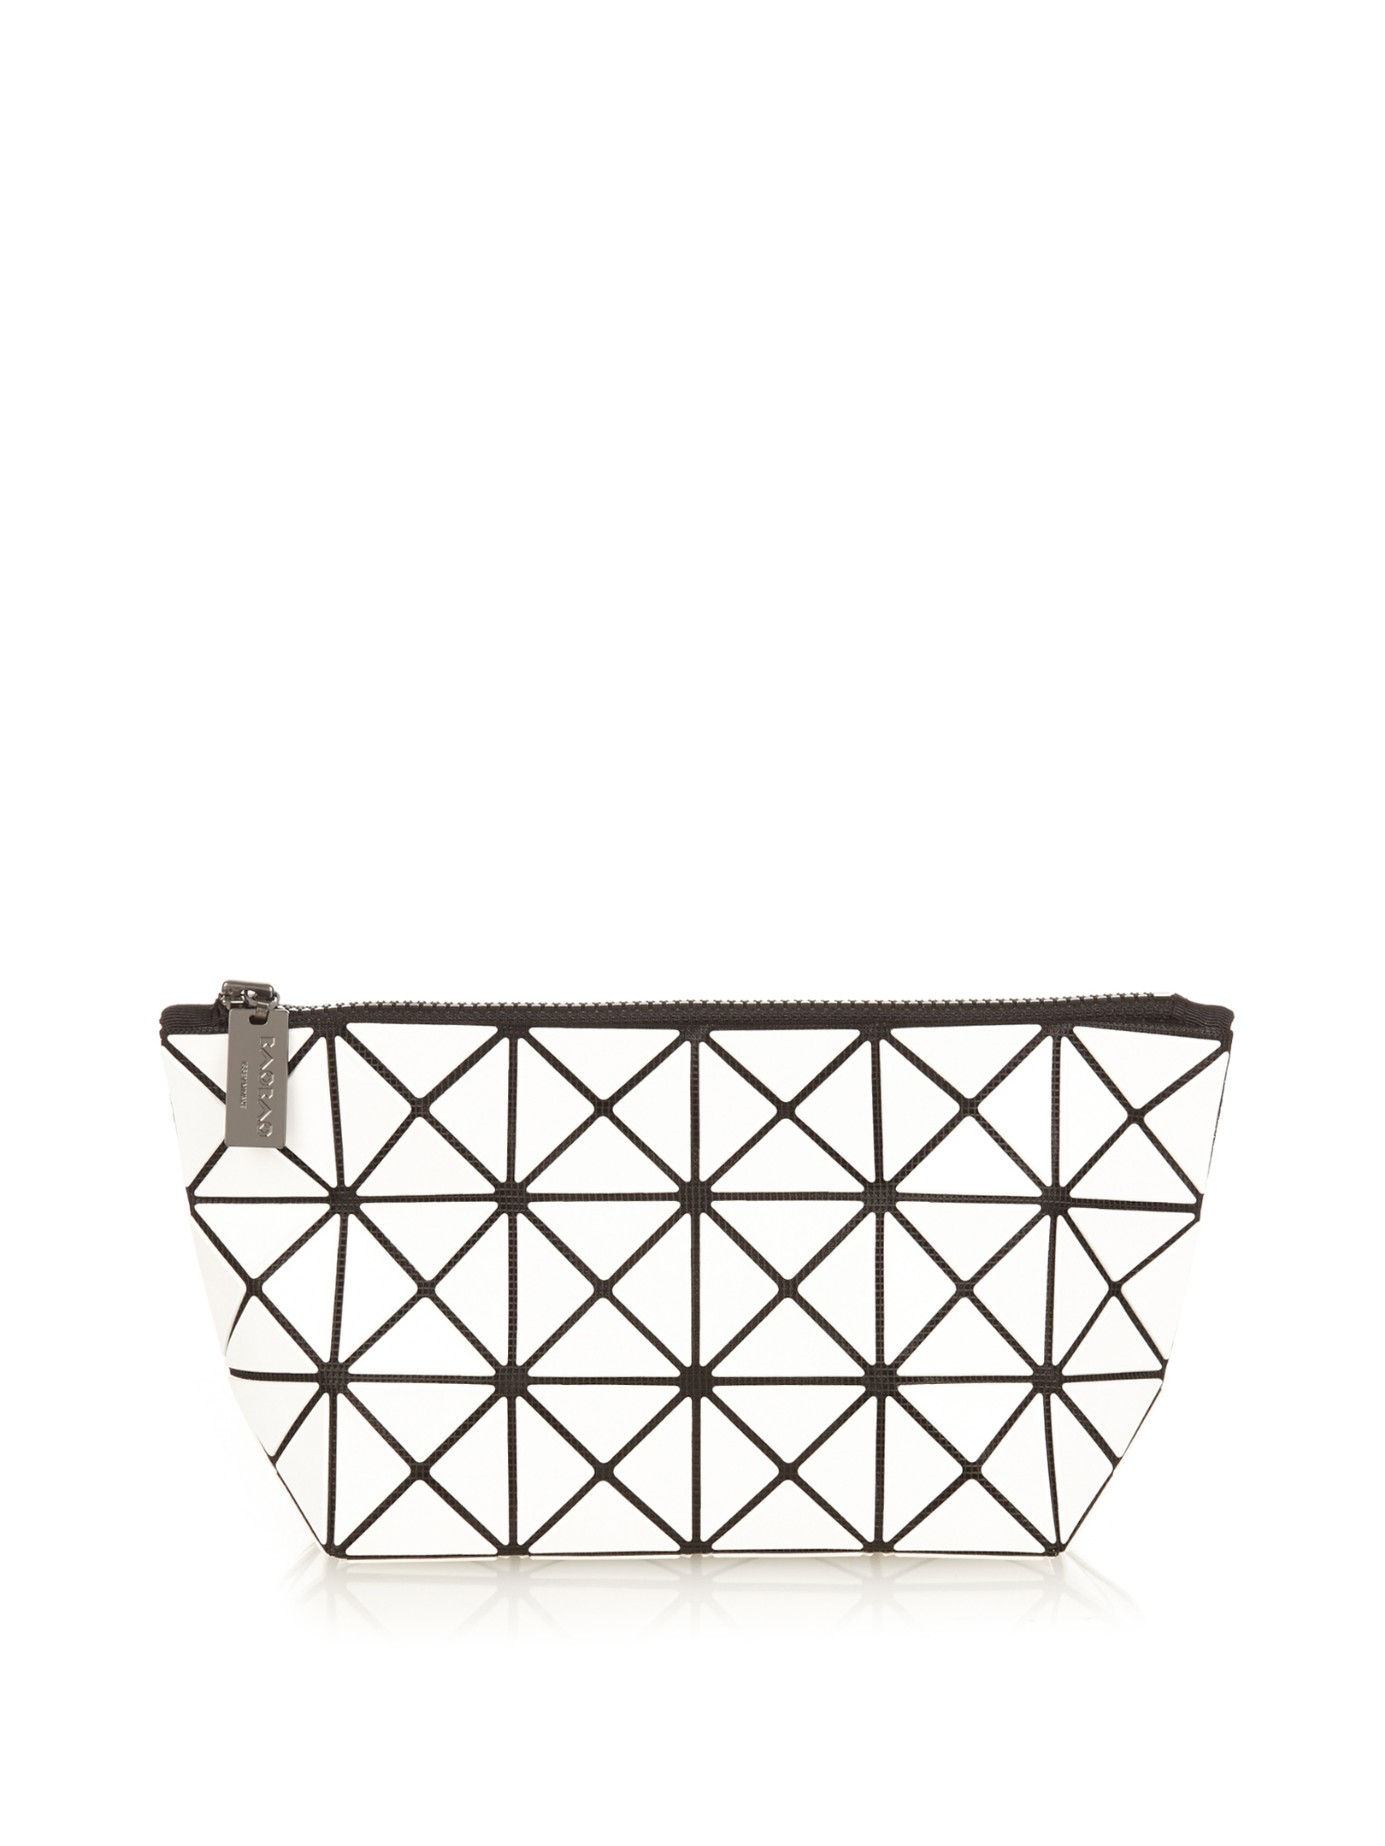 Lyst - Bao Bao Issey Miyake Lucent Basic Cosmetics Case in White 899382fe9d